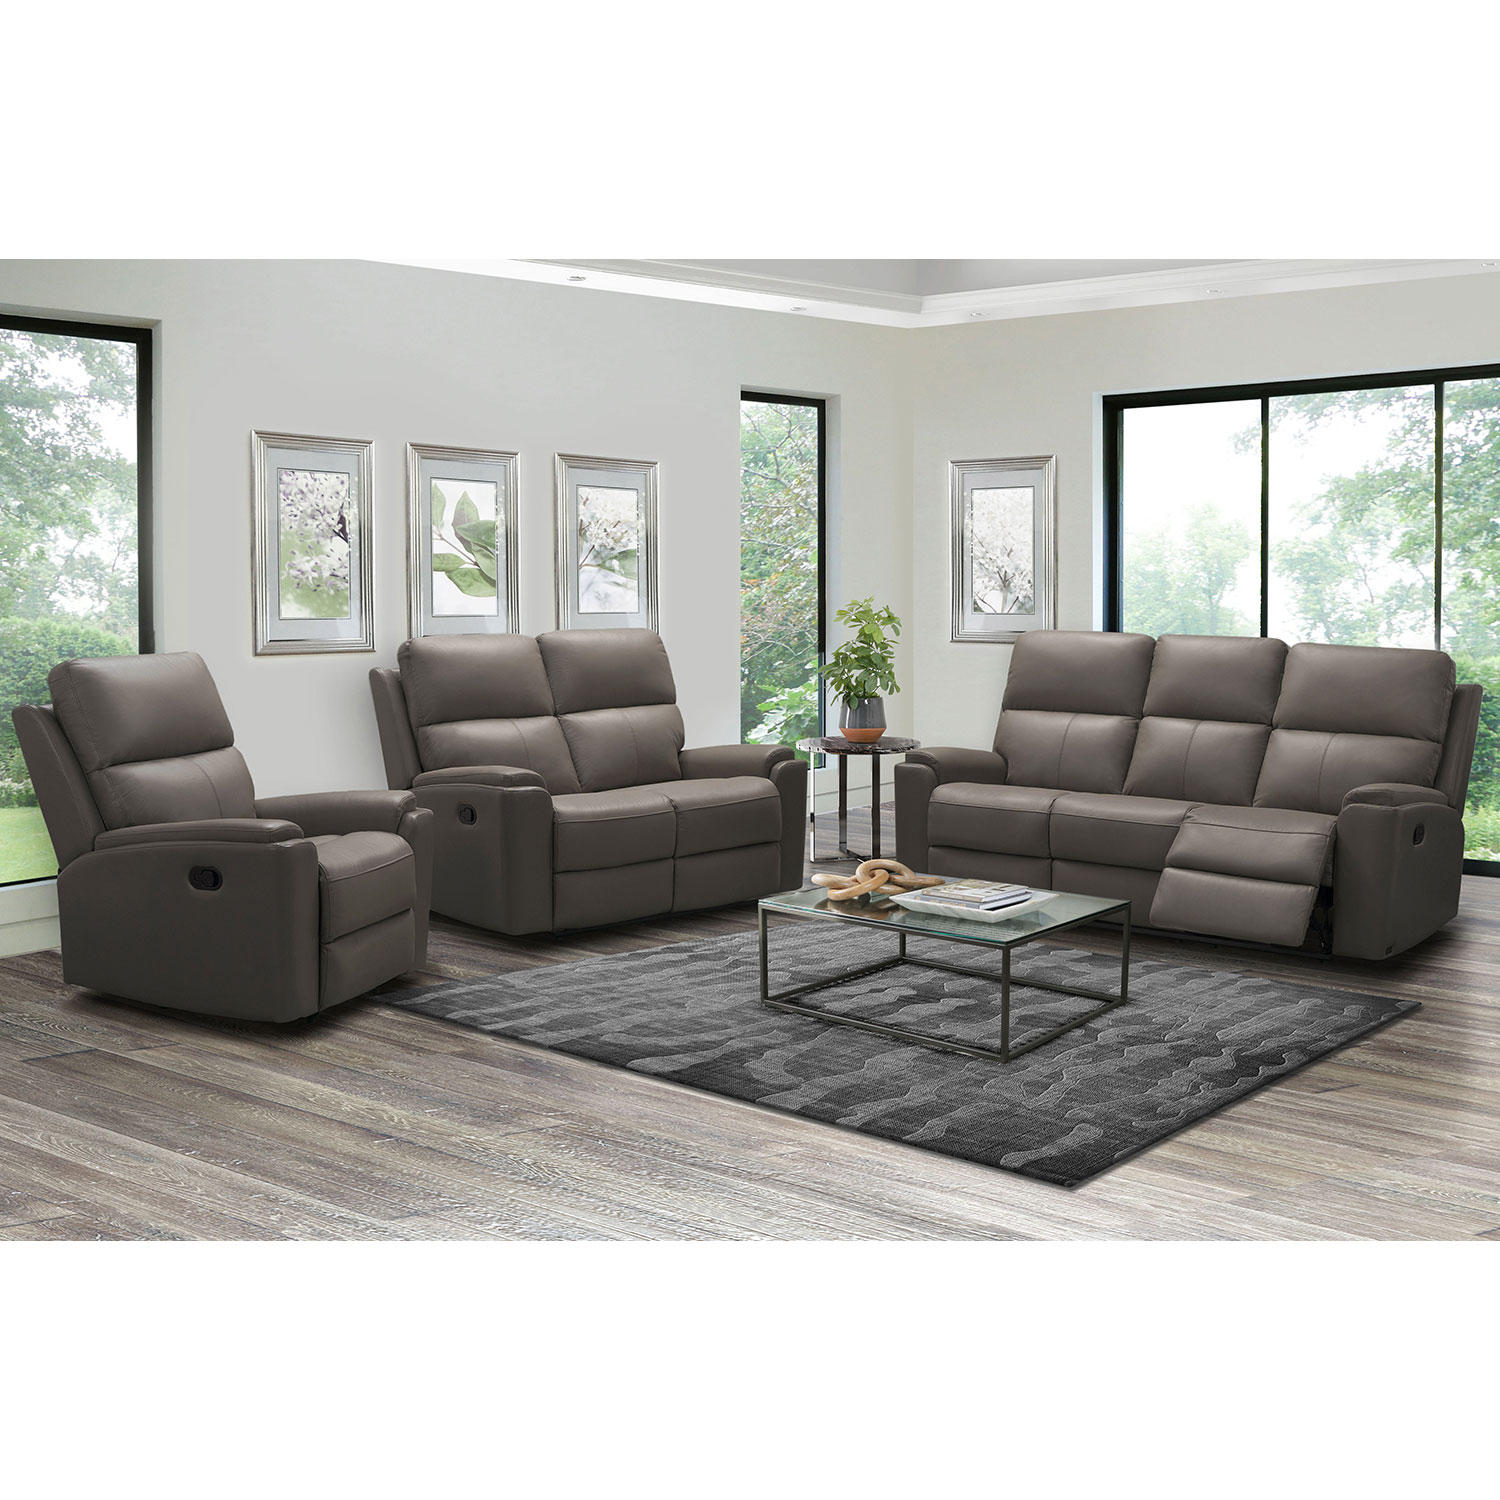 3-Piece Abbyson Living Everett Top-Grain Leather Reclining Sofa Set